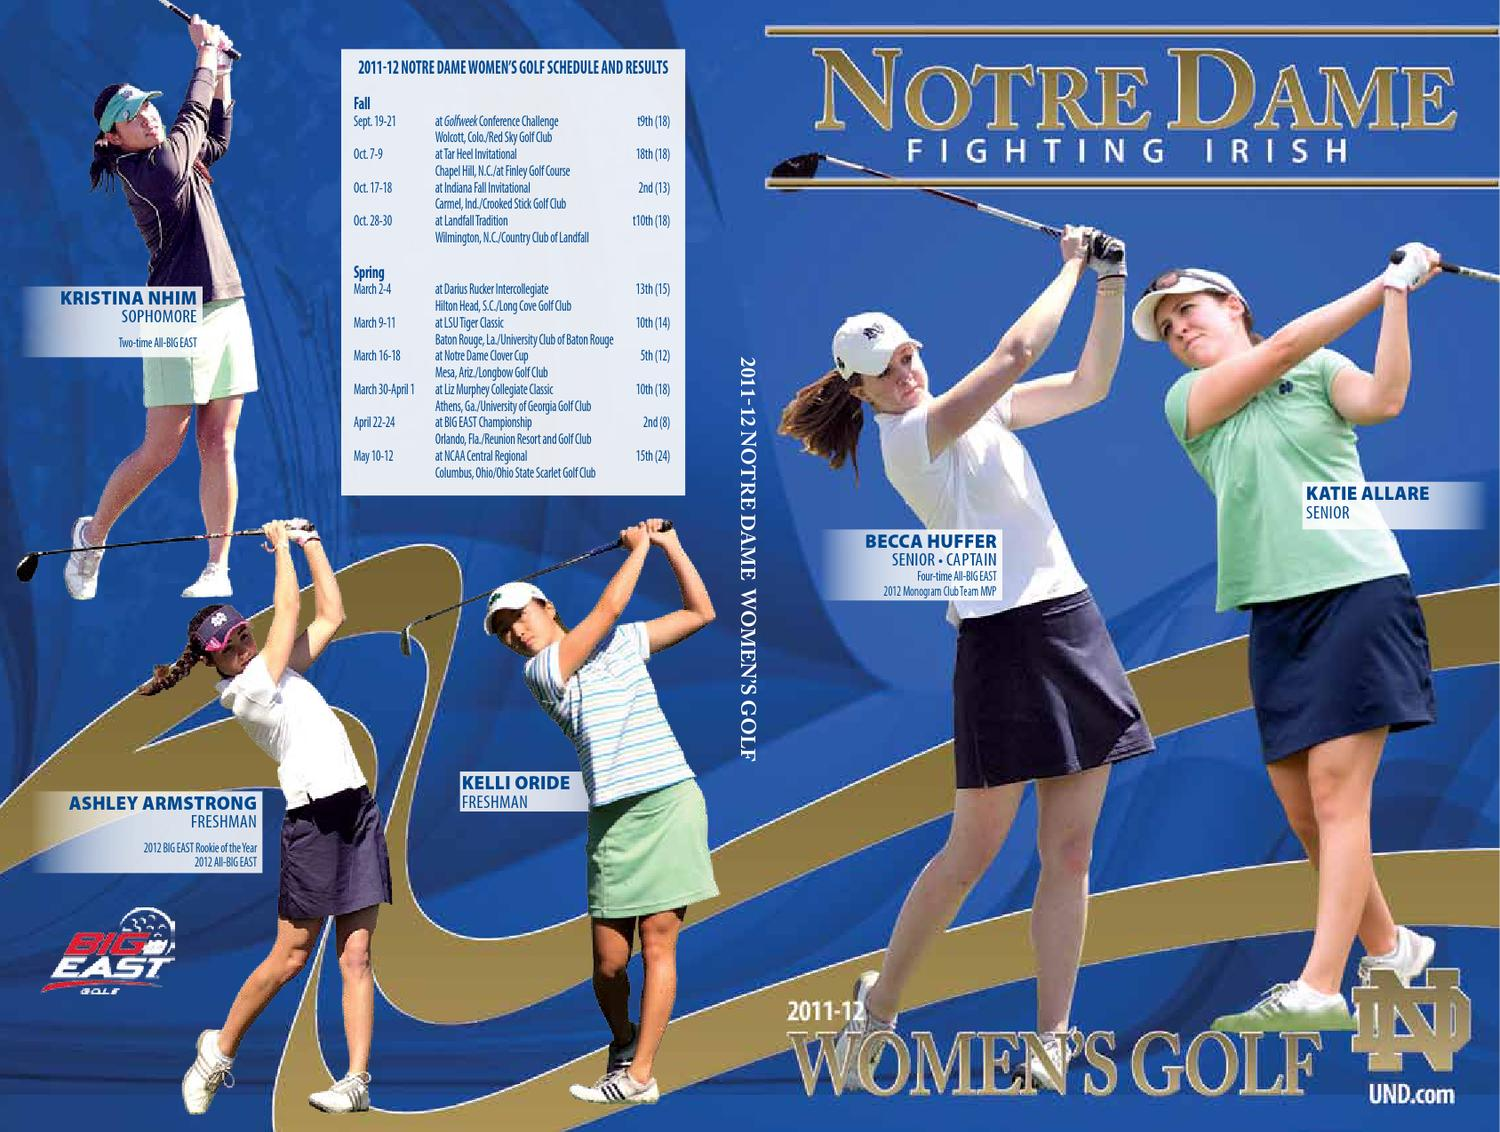 2011 12 university of notre dame women u0027s golf media guide by chris